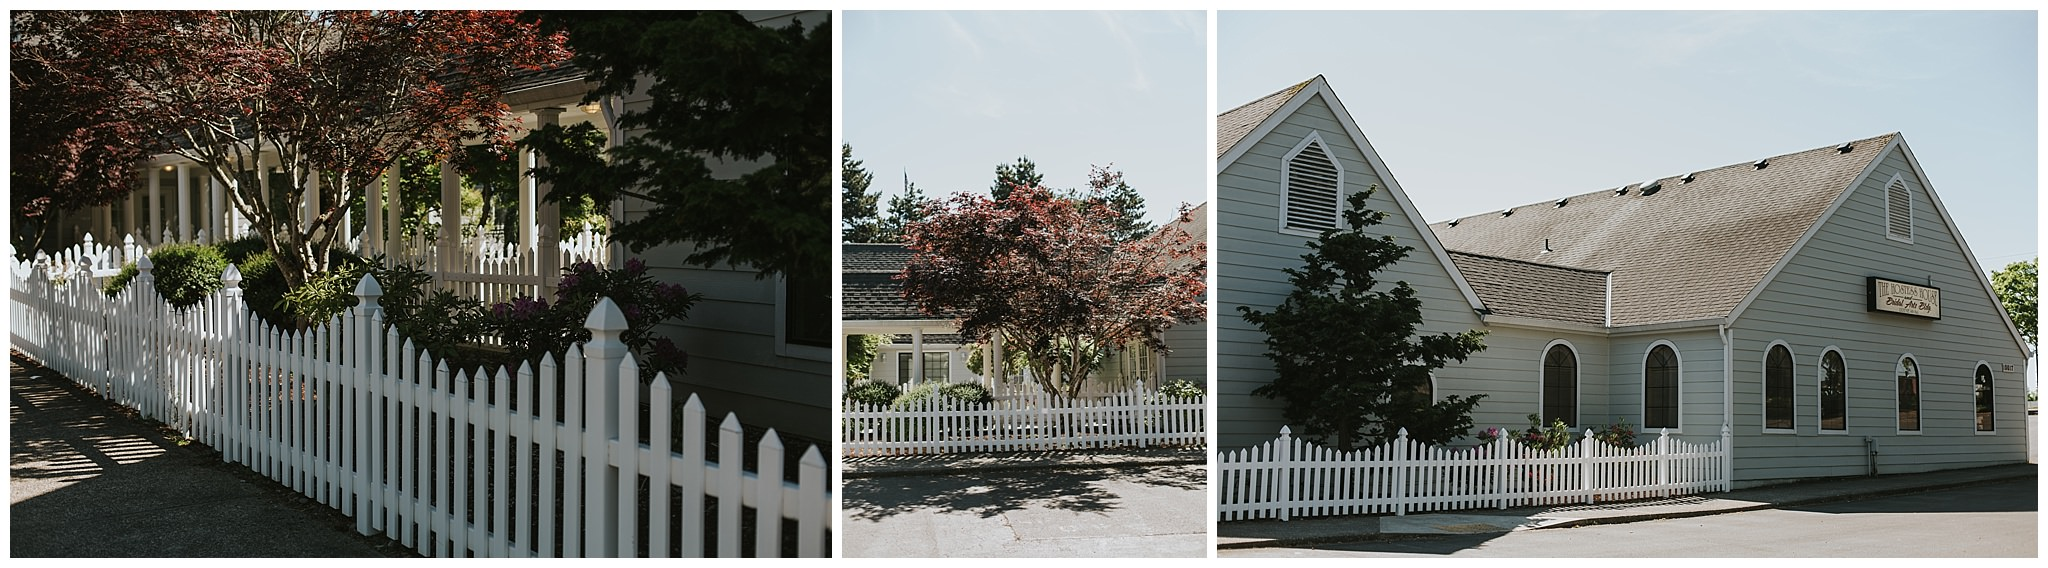 images of hostess house in vancouver washington